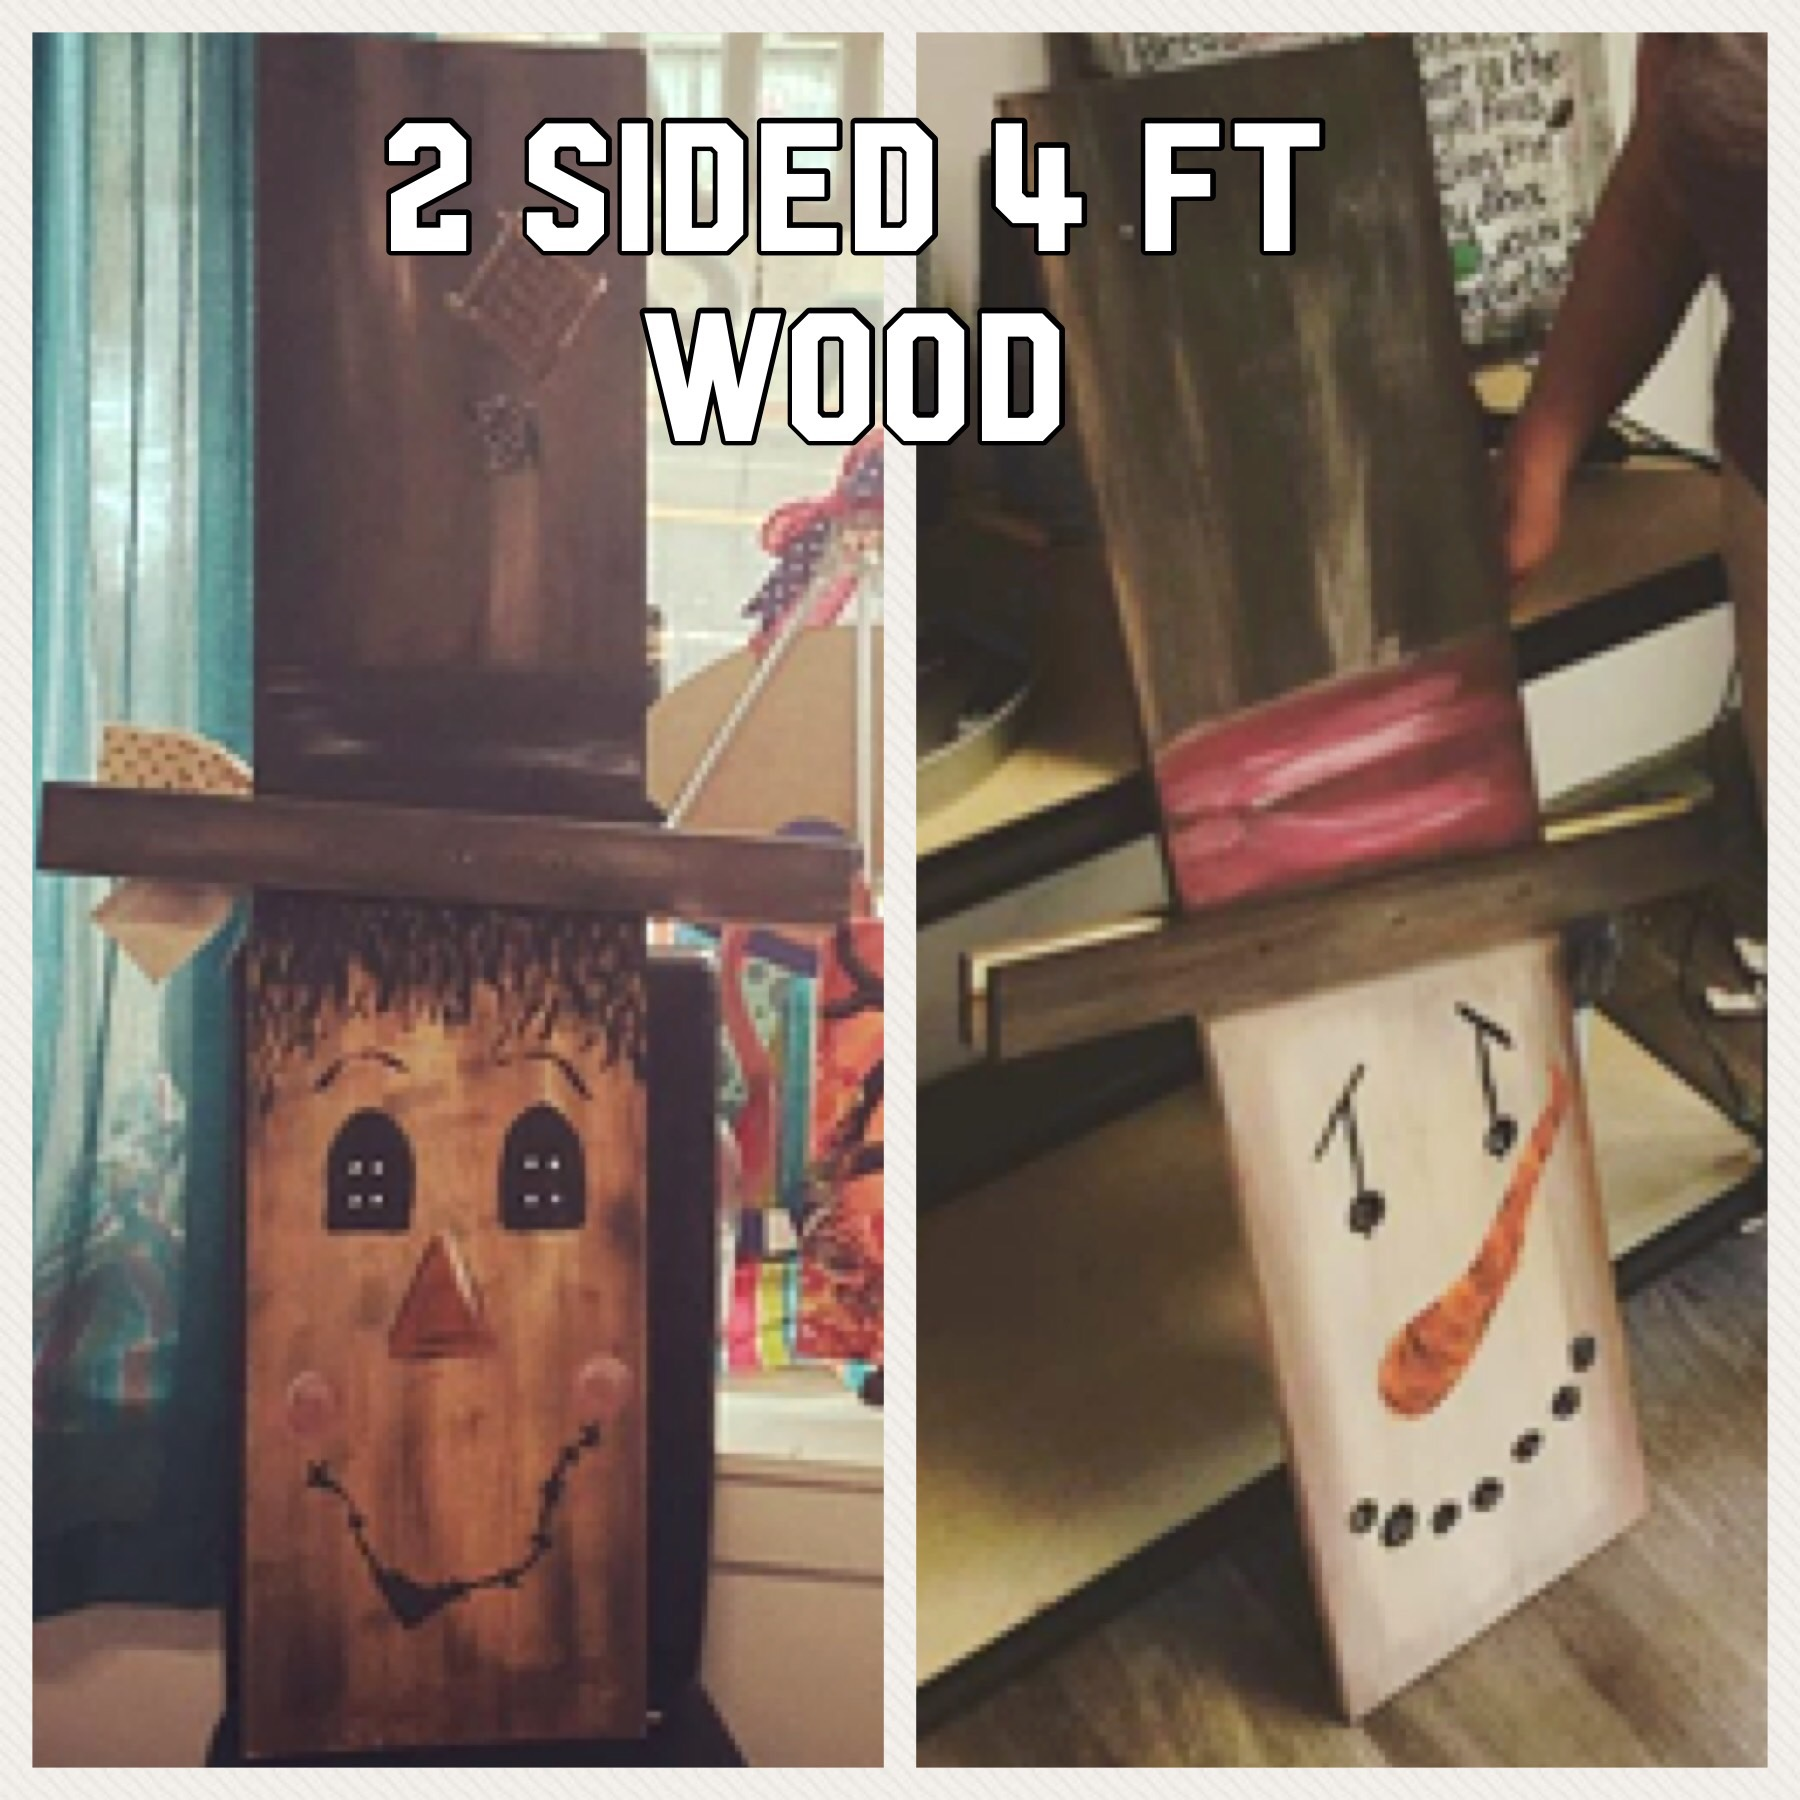 2 sided wood porch characters